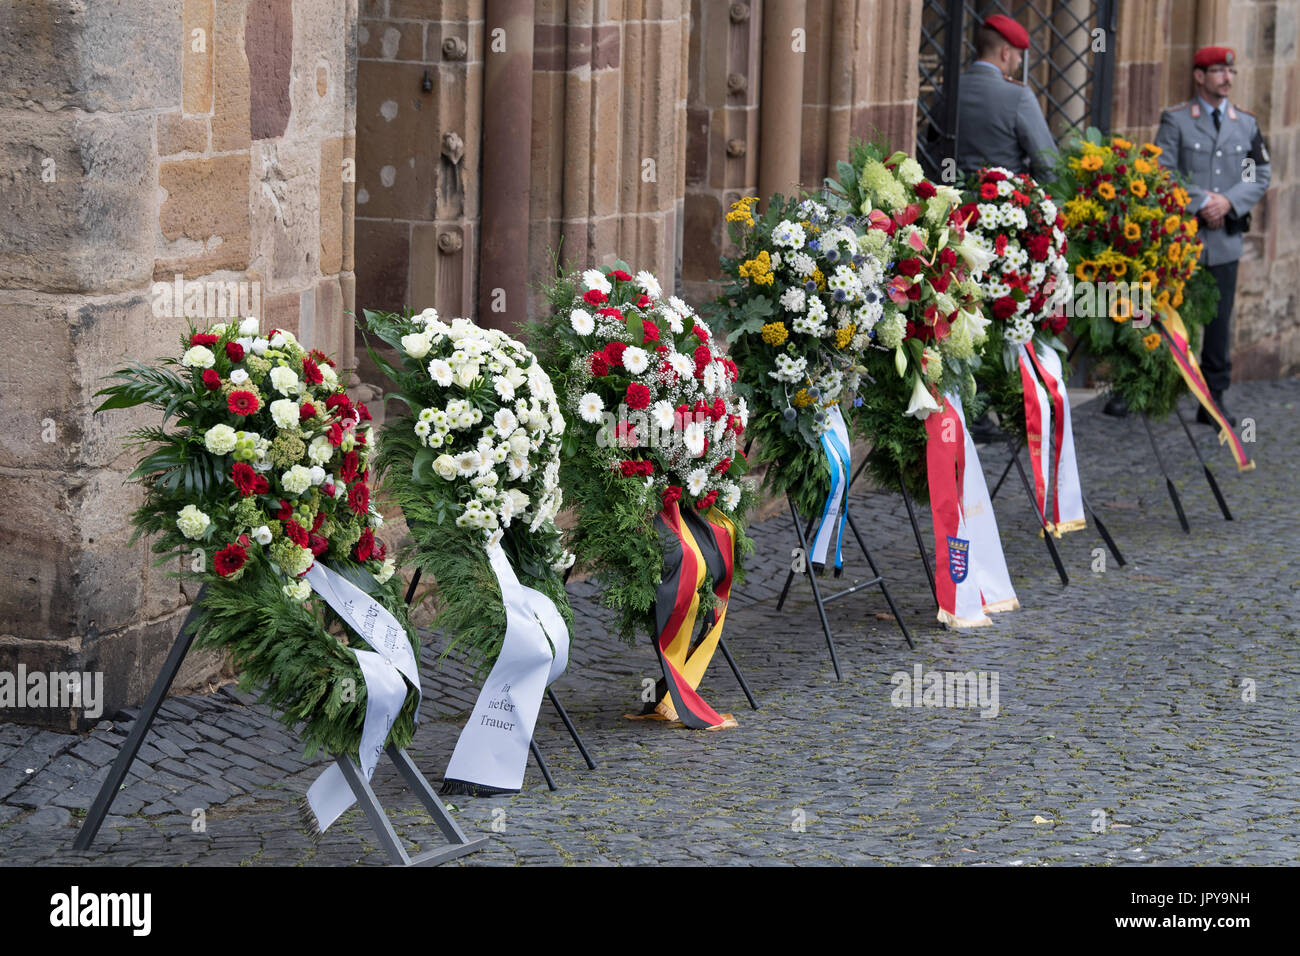 Funeral Wreaths Stock Photos Funeral Wreaths Stock Images Alamy